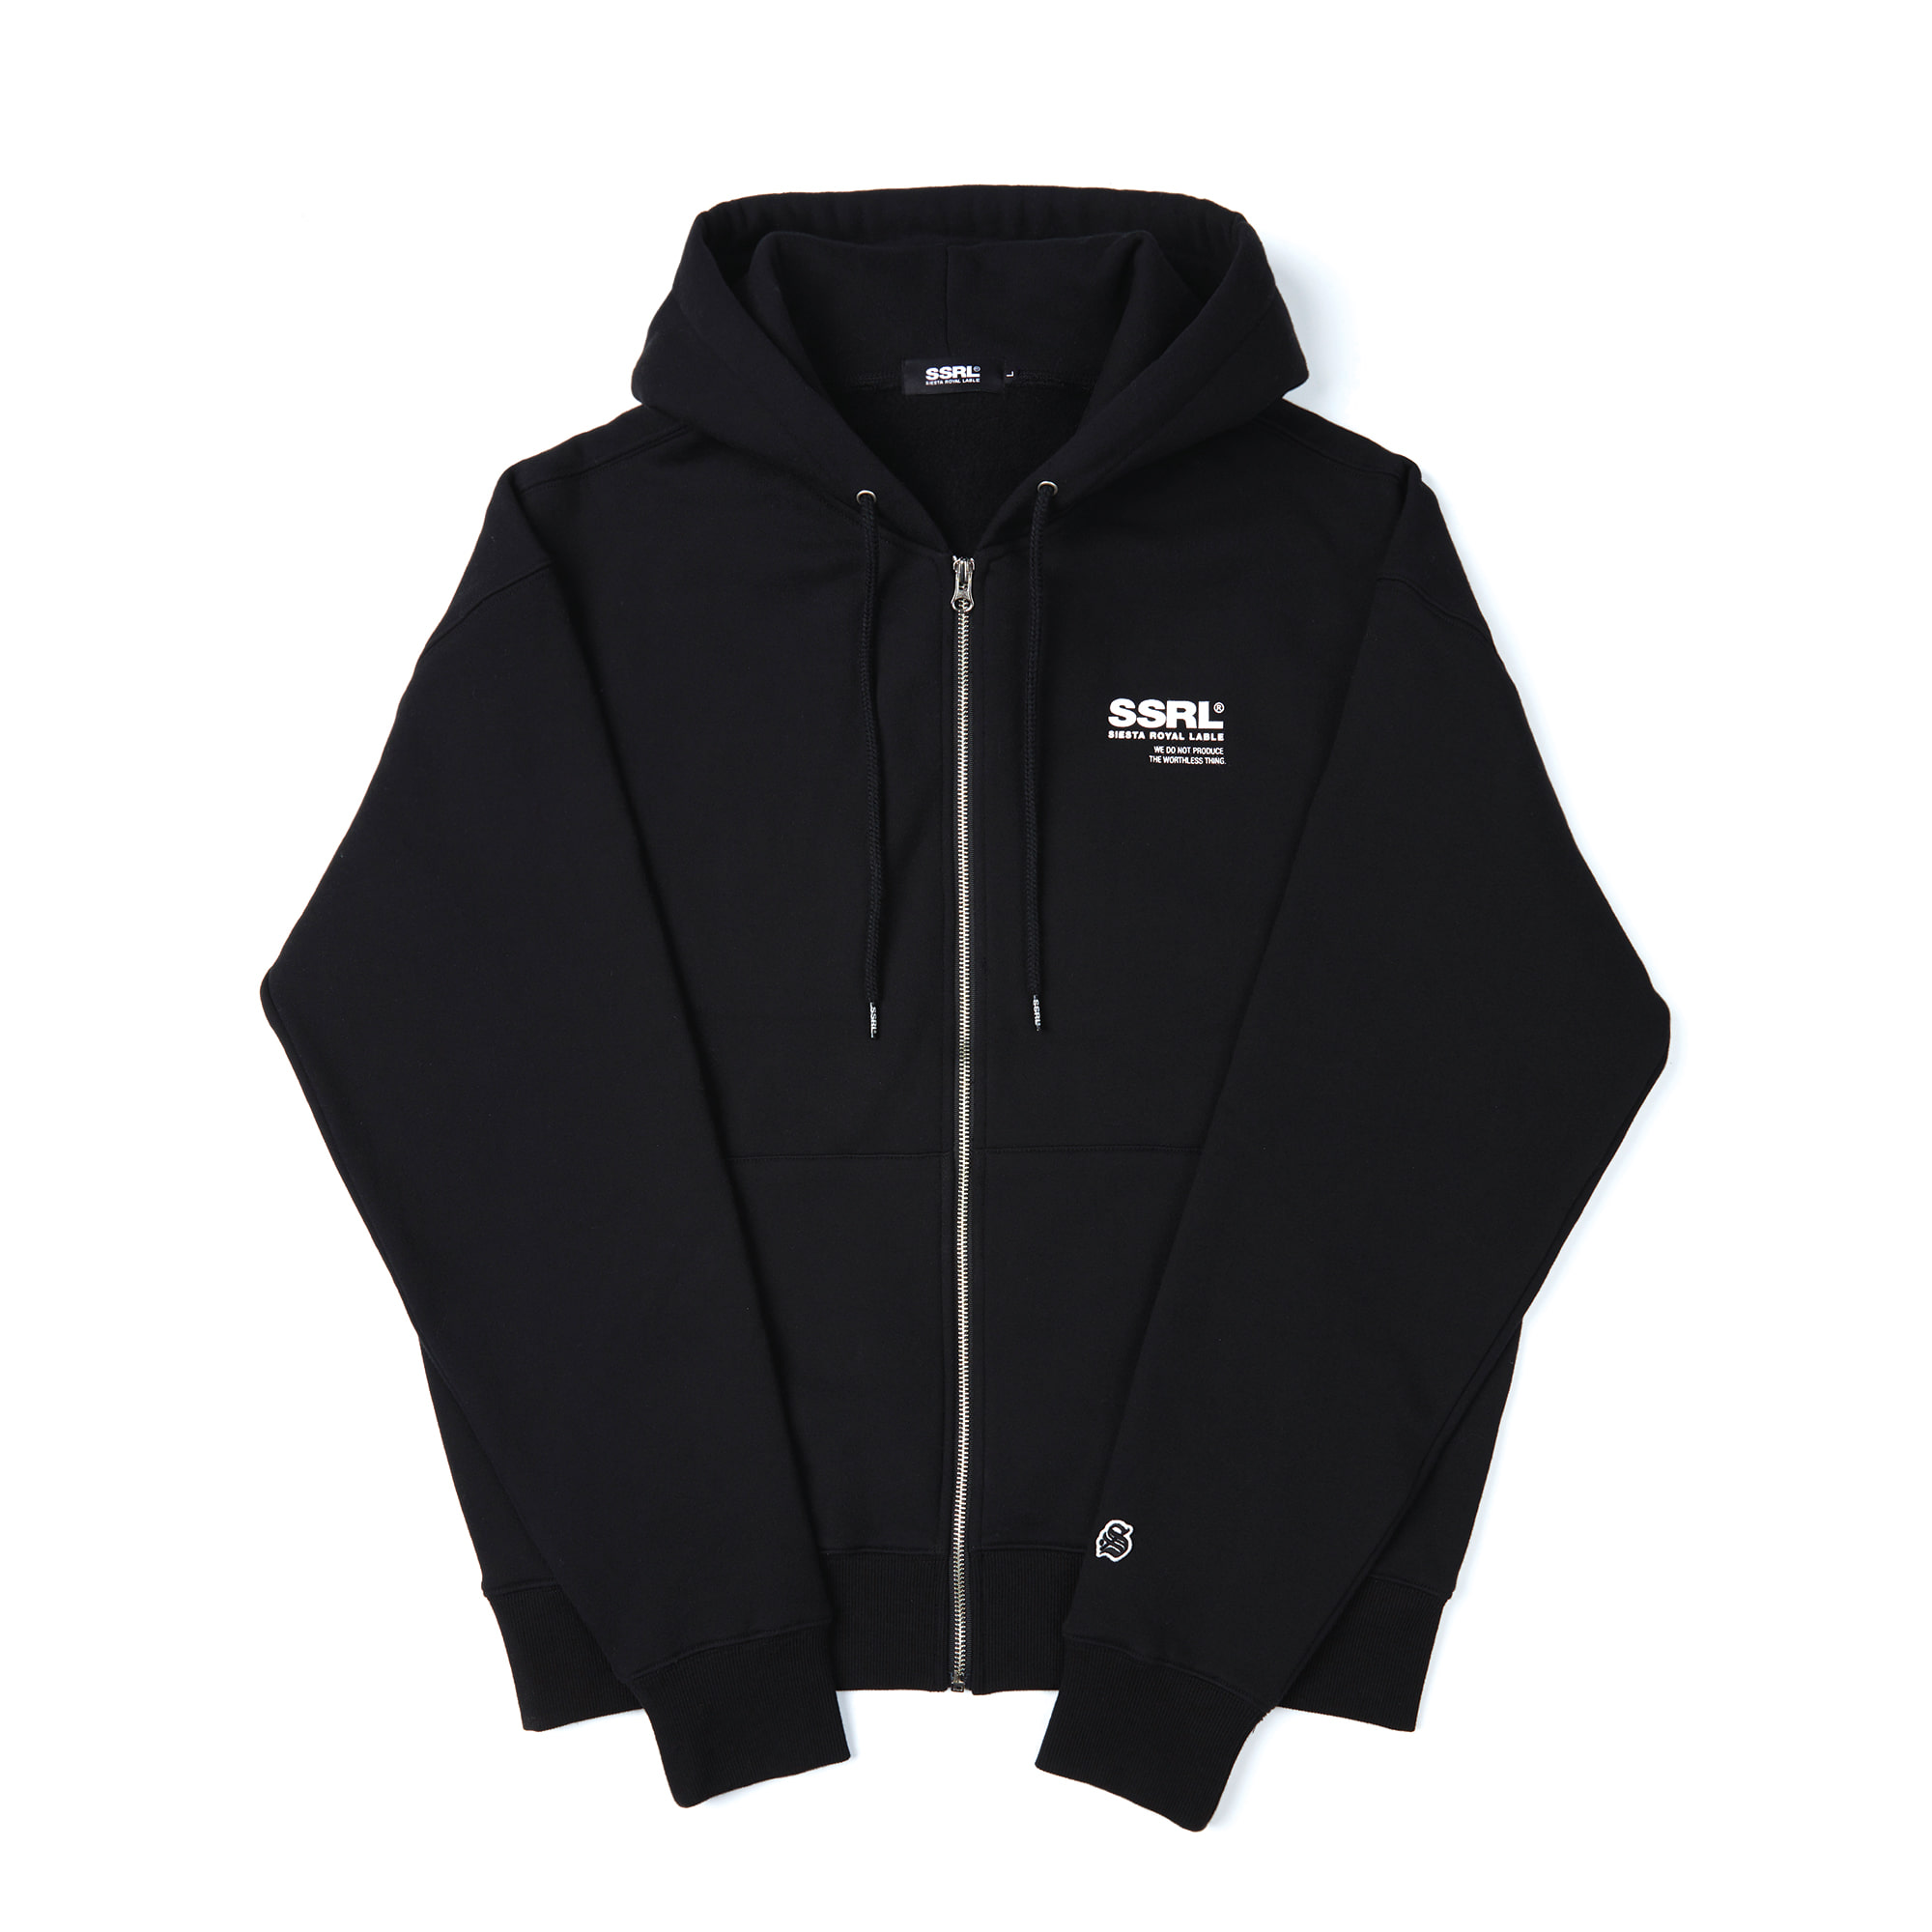 h-logo zip up / black